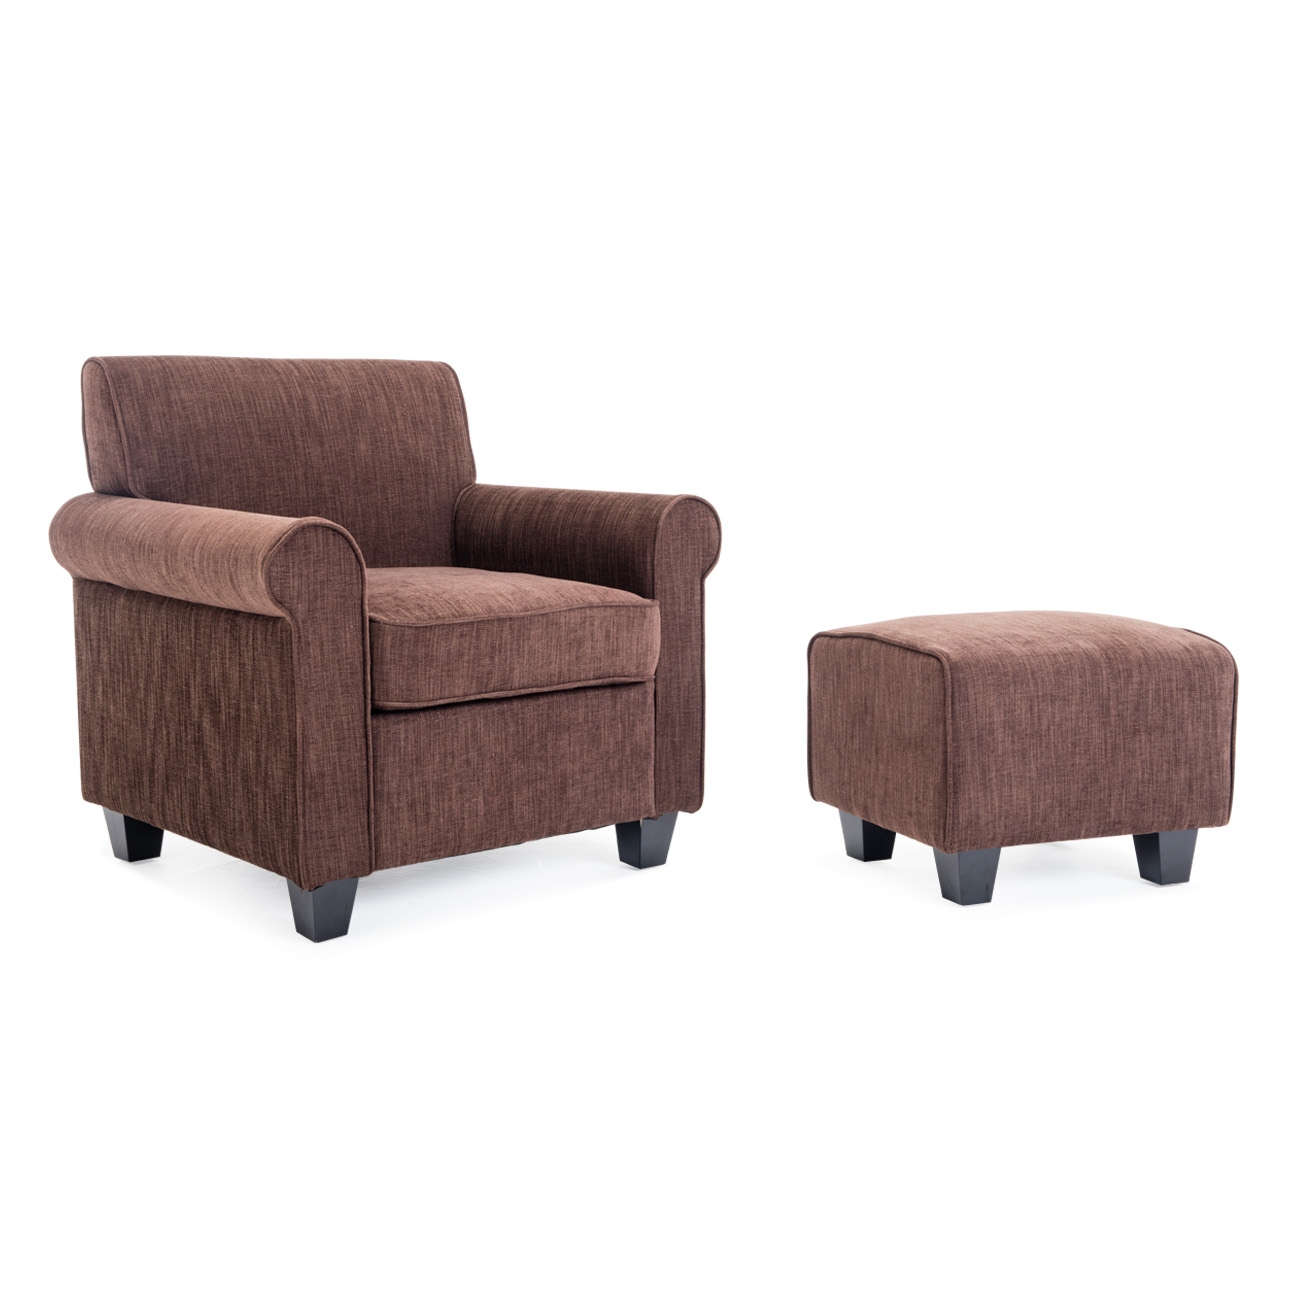 Chairs With Ottoman Details About Retro Chairs Ottoman Upholstered Foam Cushions Audrey Settee Accented Wood Legs